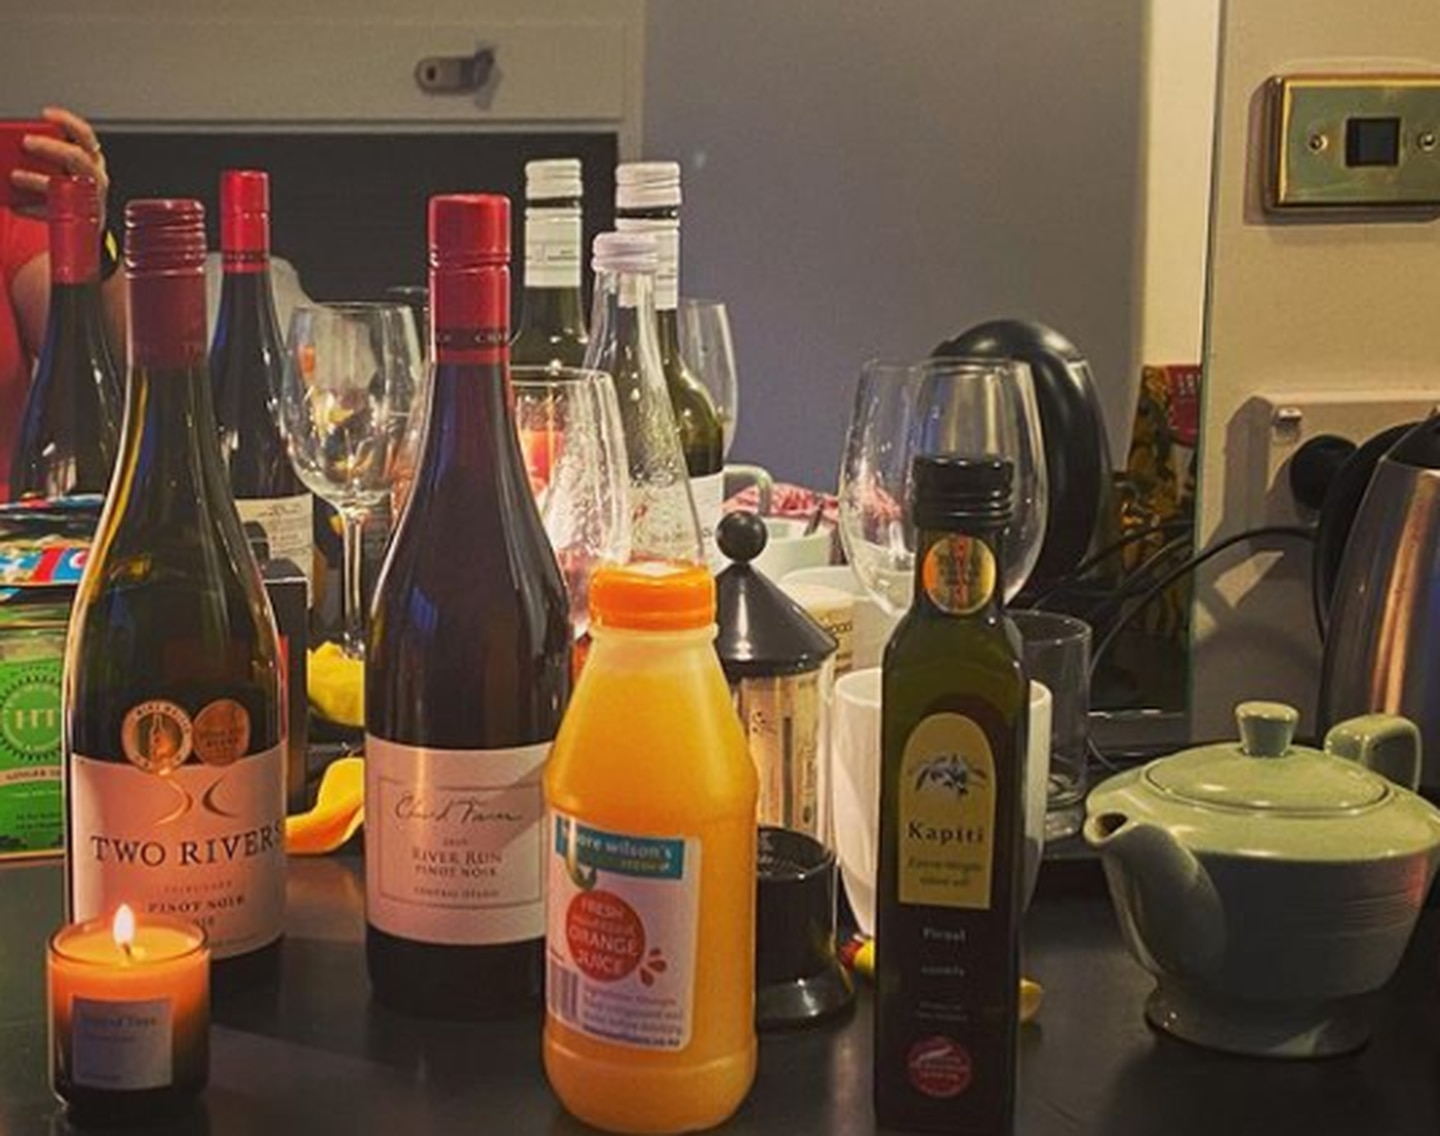 The offending items that appear to have alerted authorities include a lit candle, and more than one bottle of wine. Photo / @robynjmalcolm